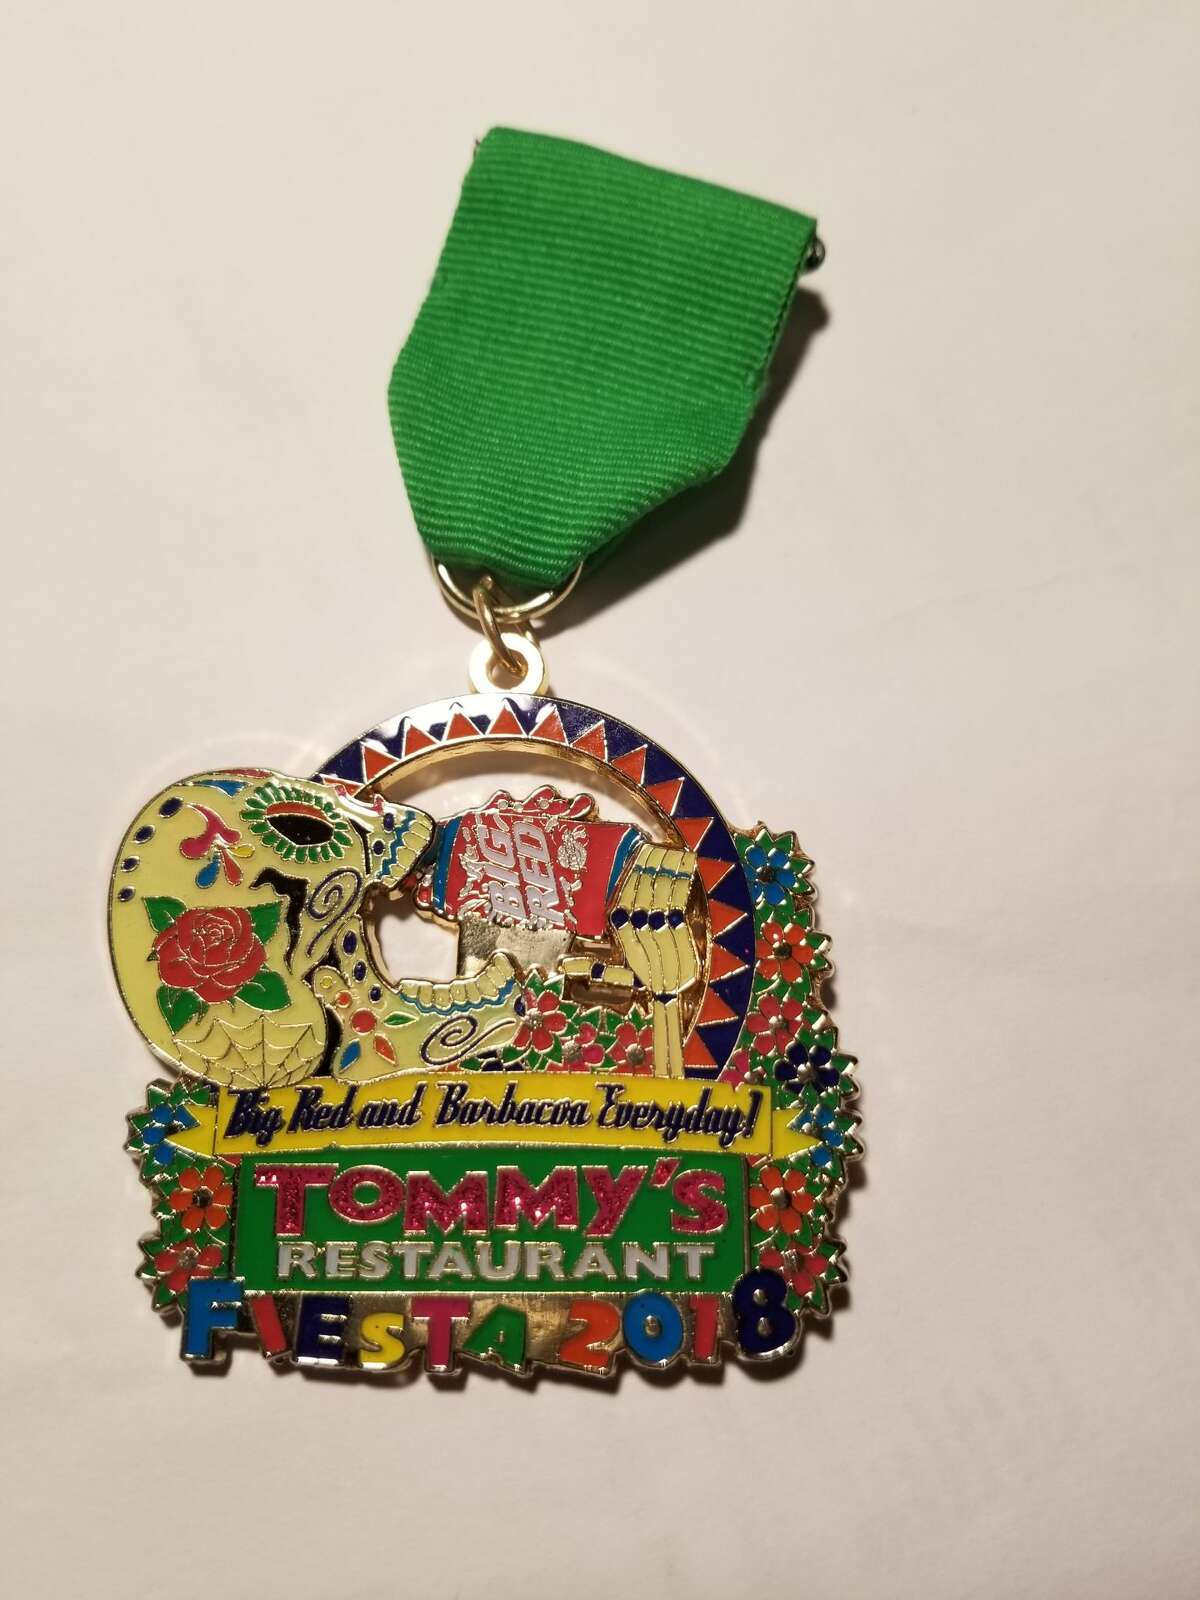 Check out the 400-plus medals submitted in the 2018 San Antonio Express-News Fiesta Medals Contest in the following slideshow. Tommy's Mexican Restaurant's Fiesta medal features a spinning taco and Big Red soda